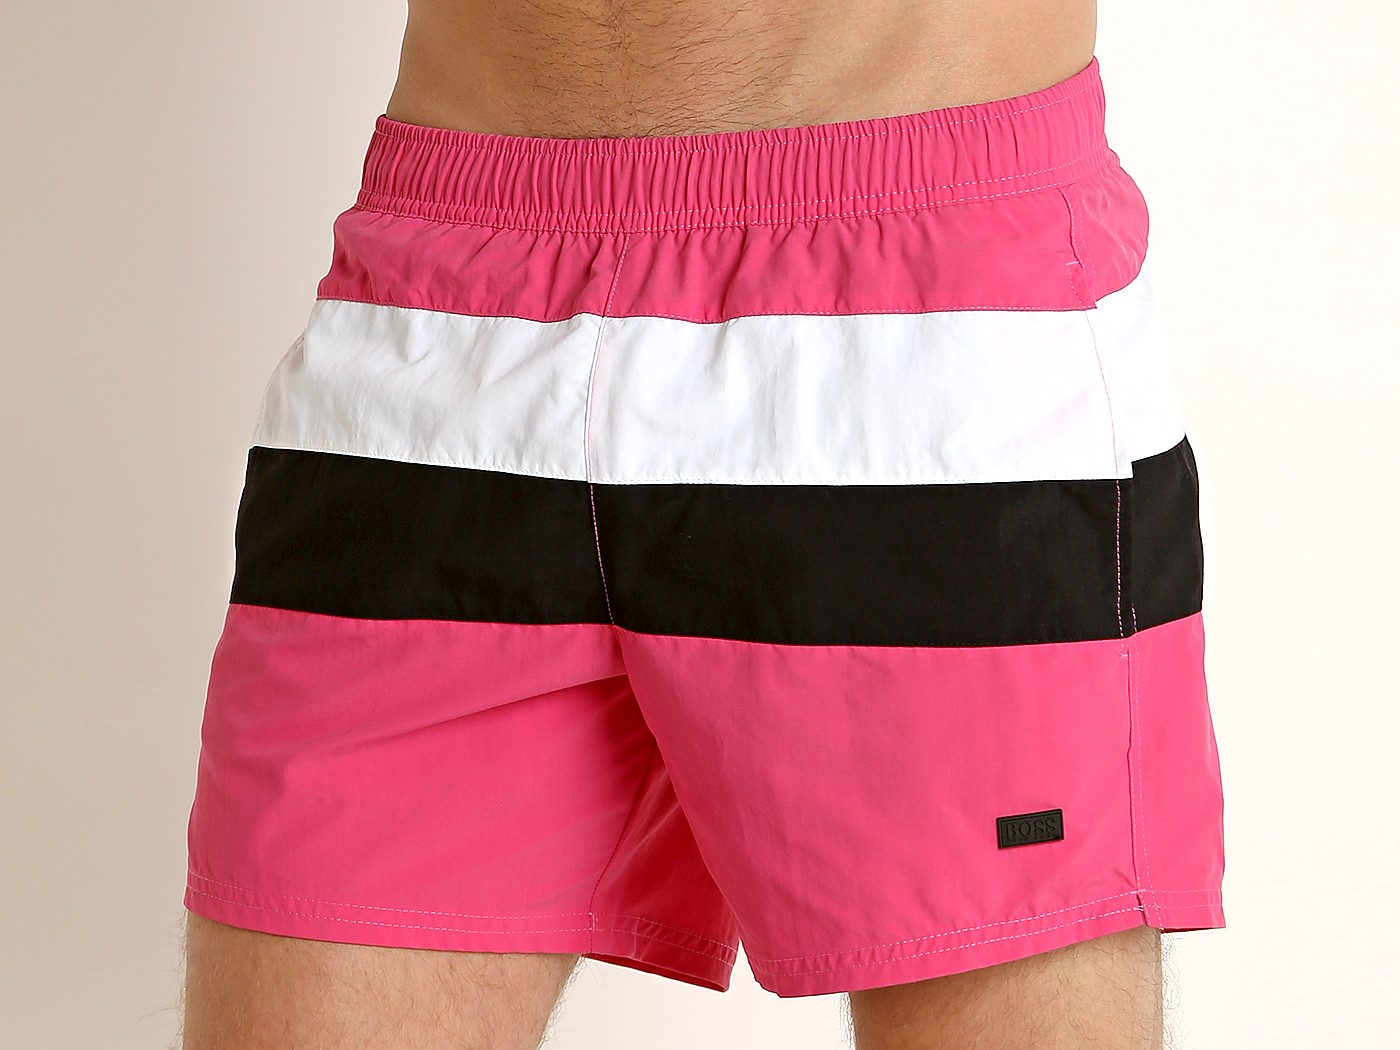 9d07a7fe Hugo Boss Filefish Swim Shorts Pink/White 50407663-691 at International Jock